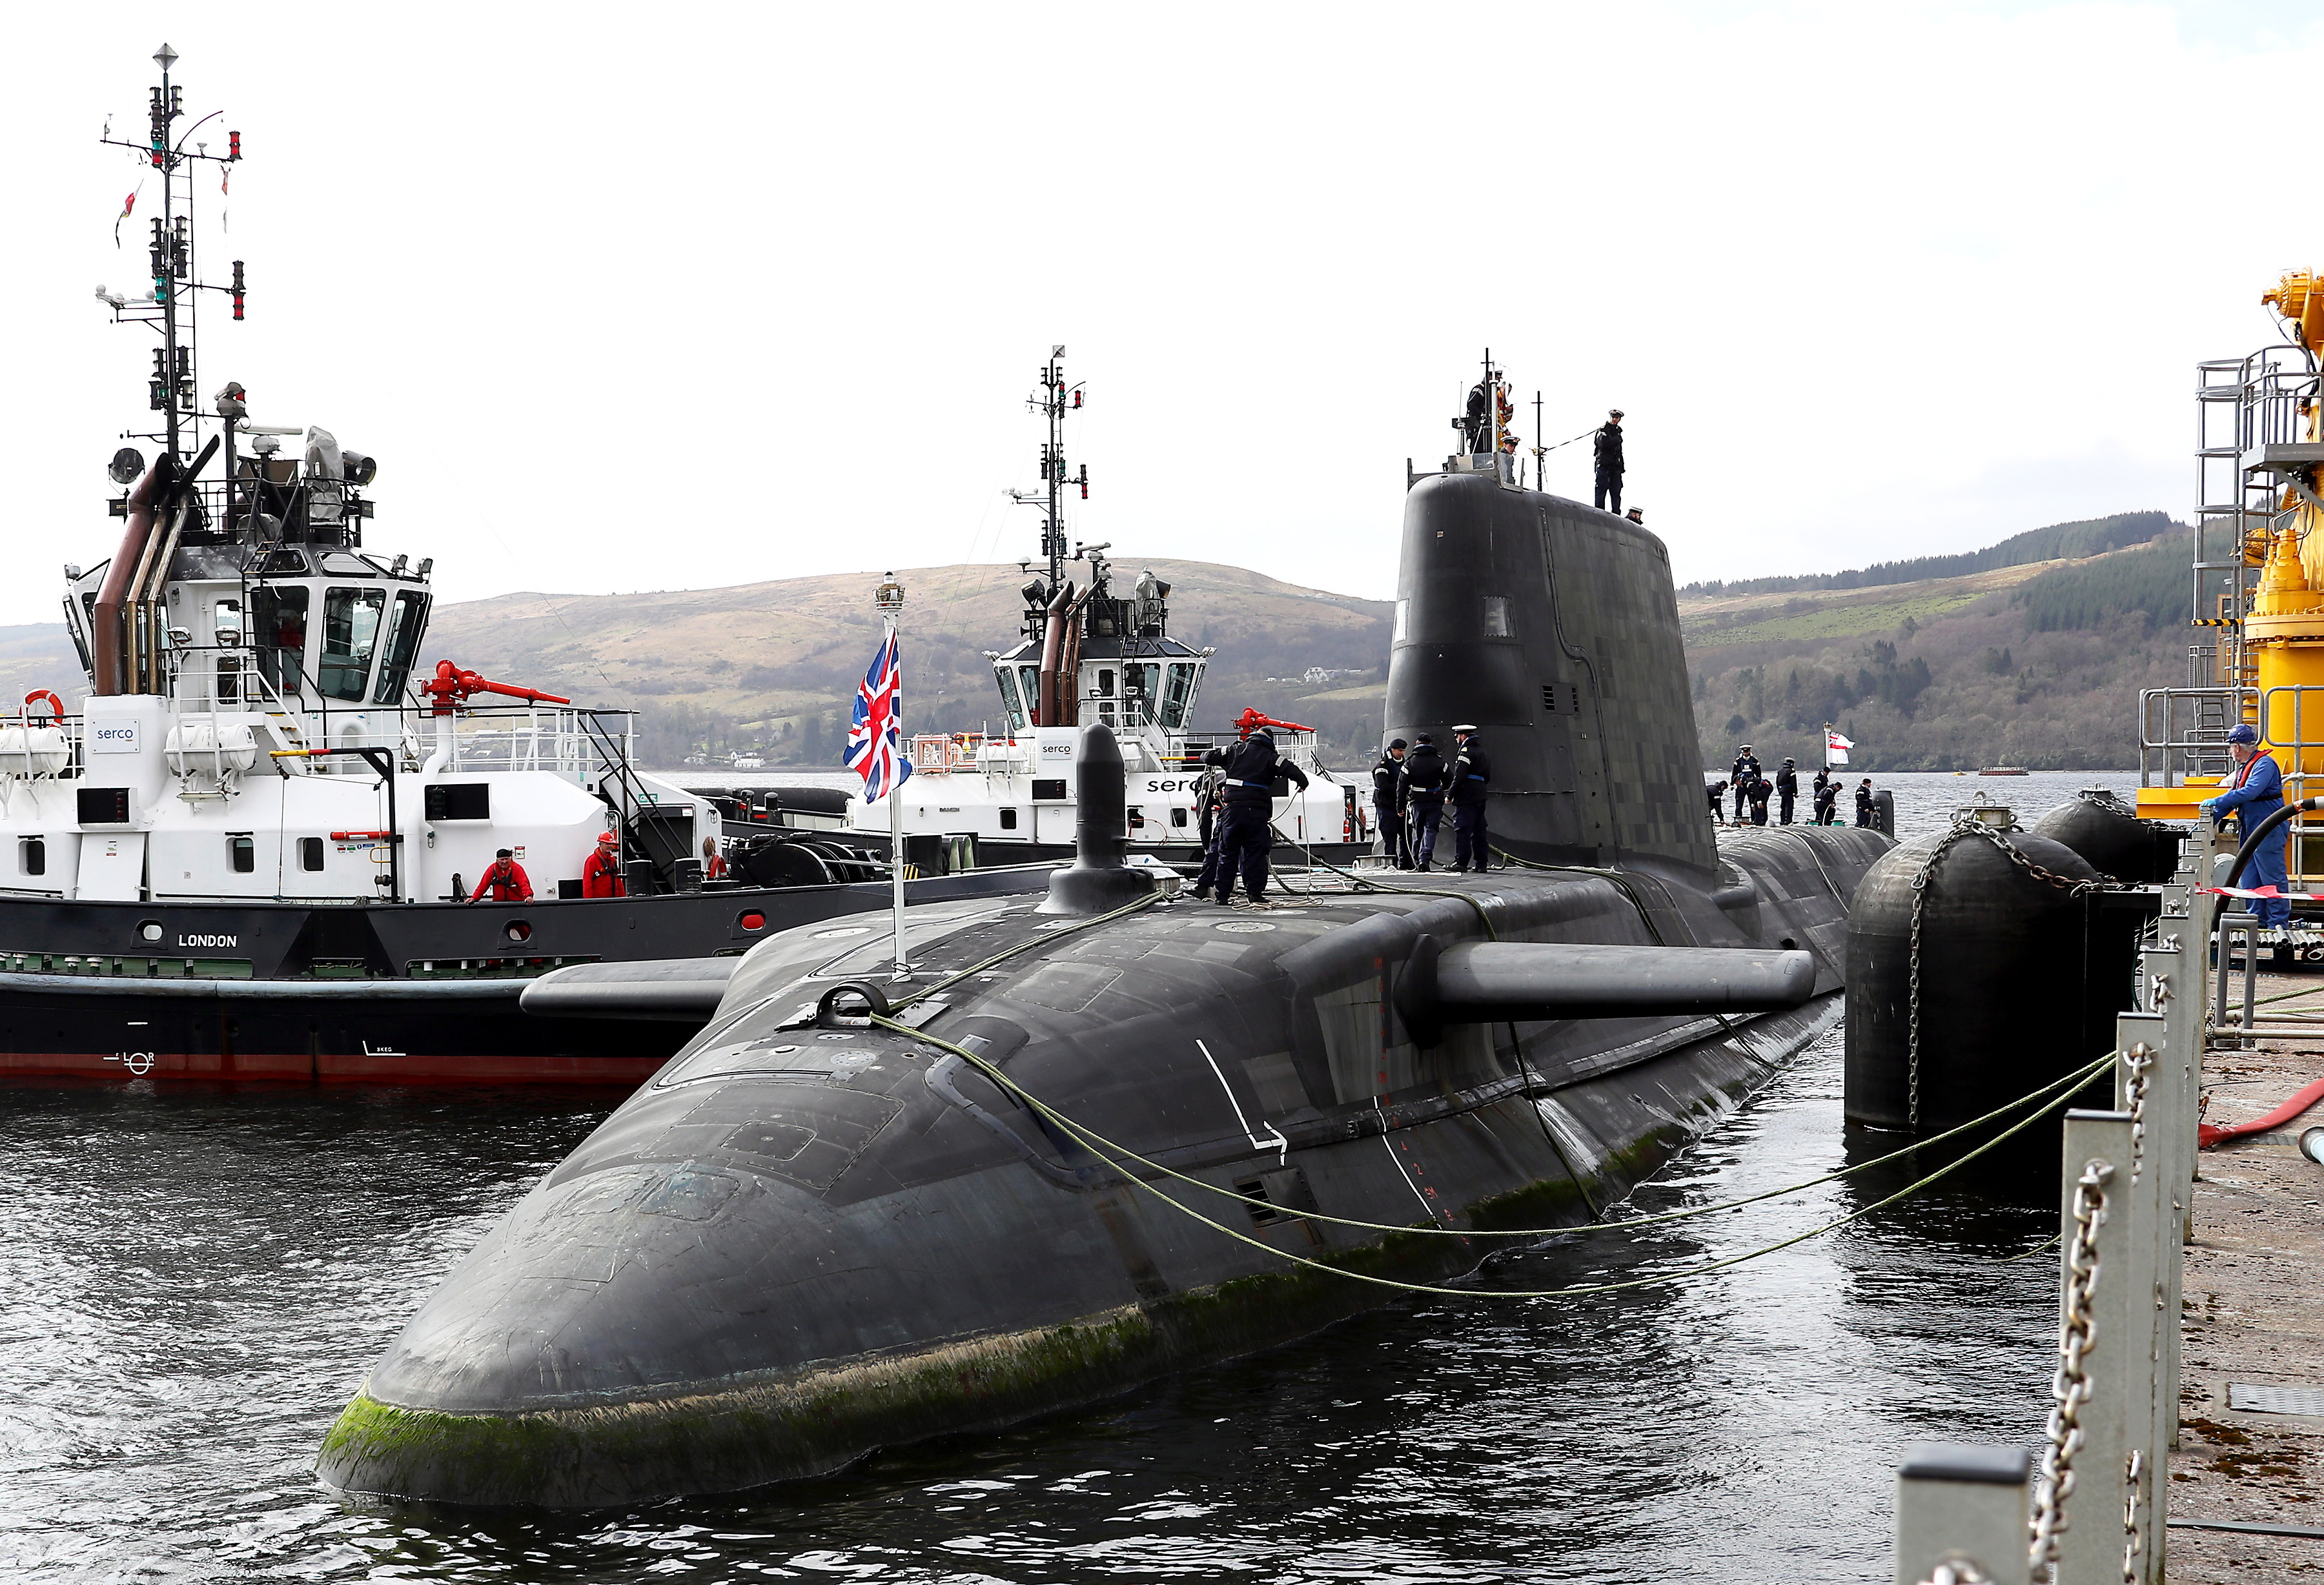 Nuclear Rearmament:  One organisation that hasn't ignored it is the Campaign for Nuclear Disarmament